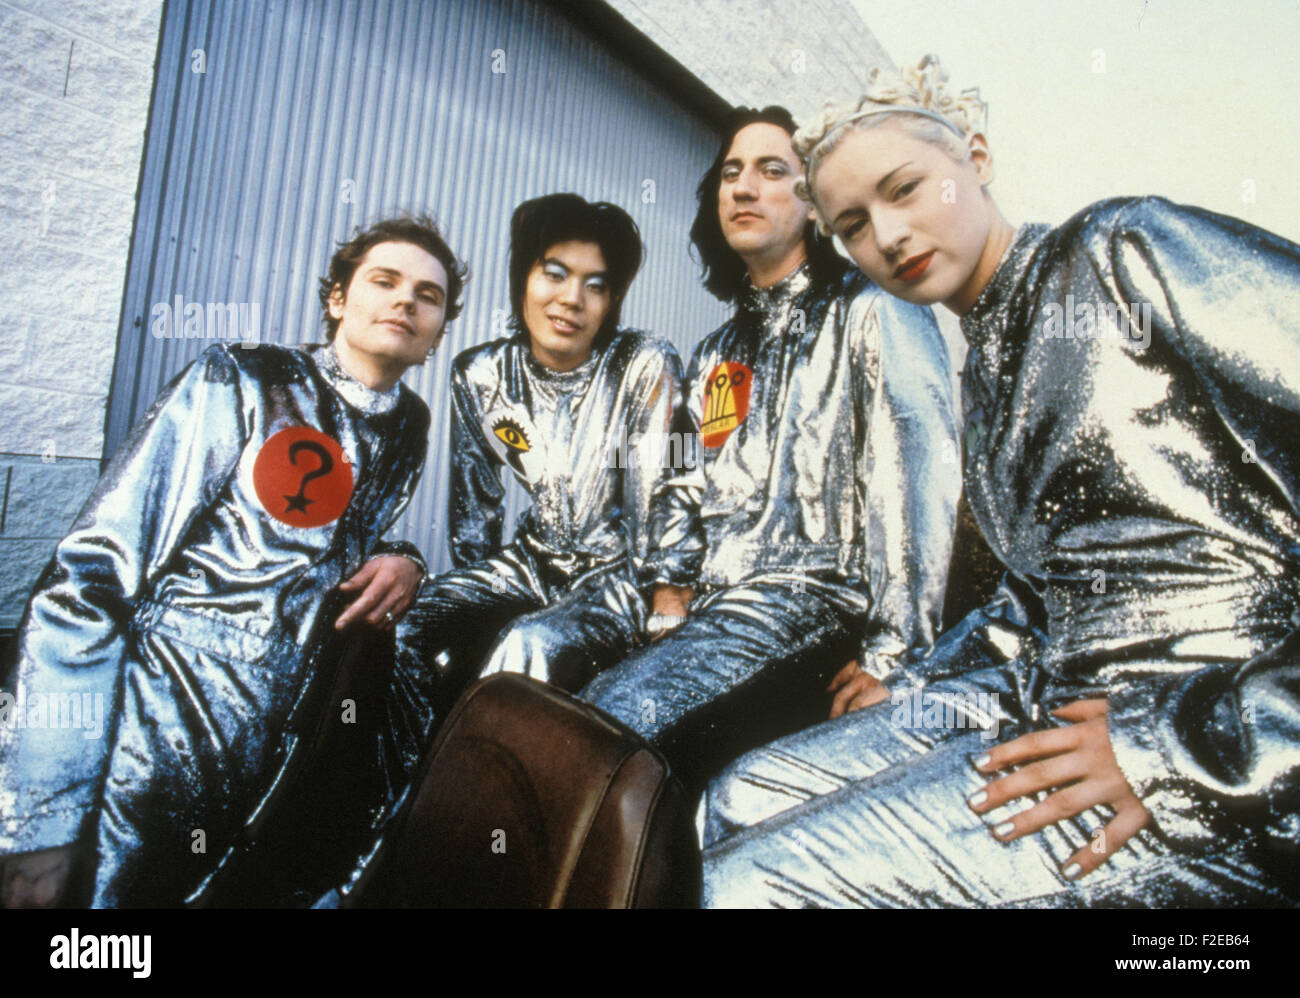 SMASHING PUMPKINS Promotional photo of US rock group about 2000. - Stock Image